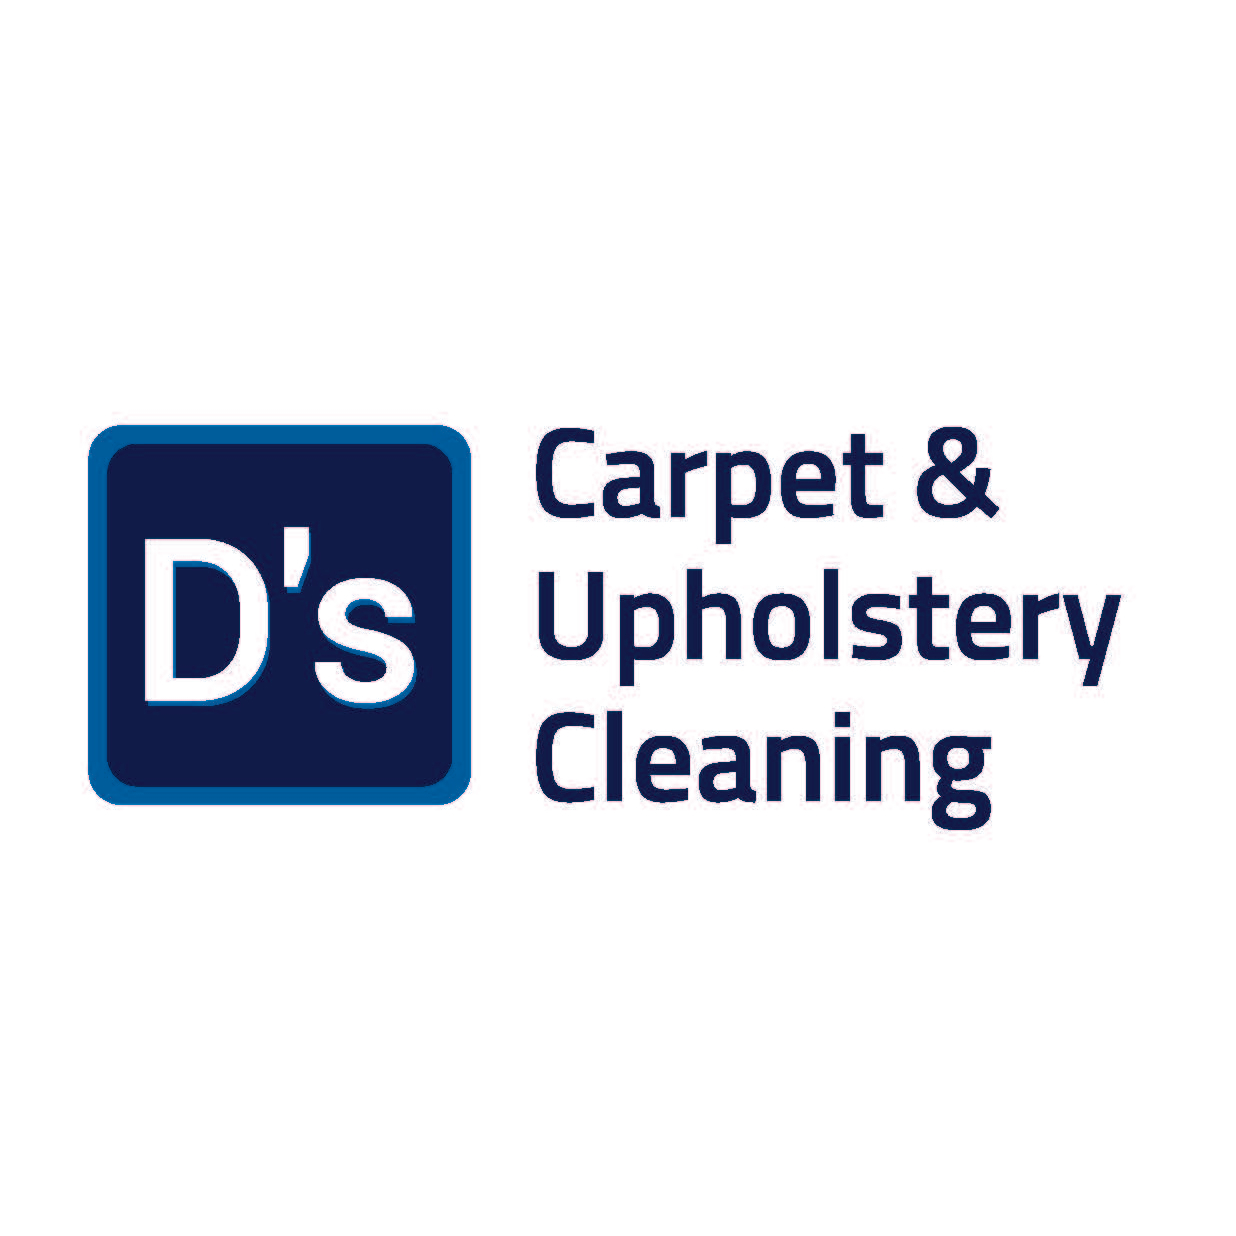 D 39 S Carpet Upholstery Cleaning Coupons Joliet Il Near Me